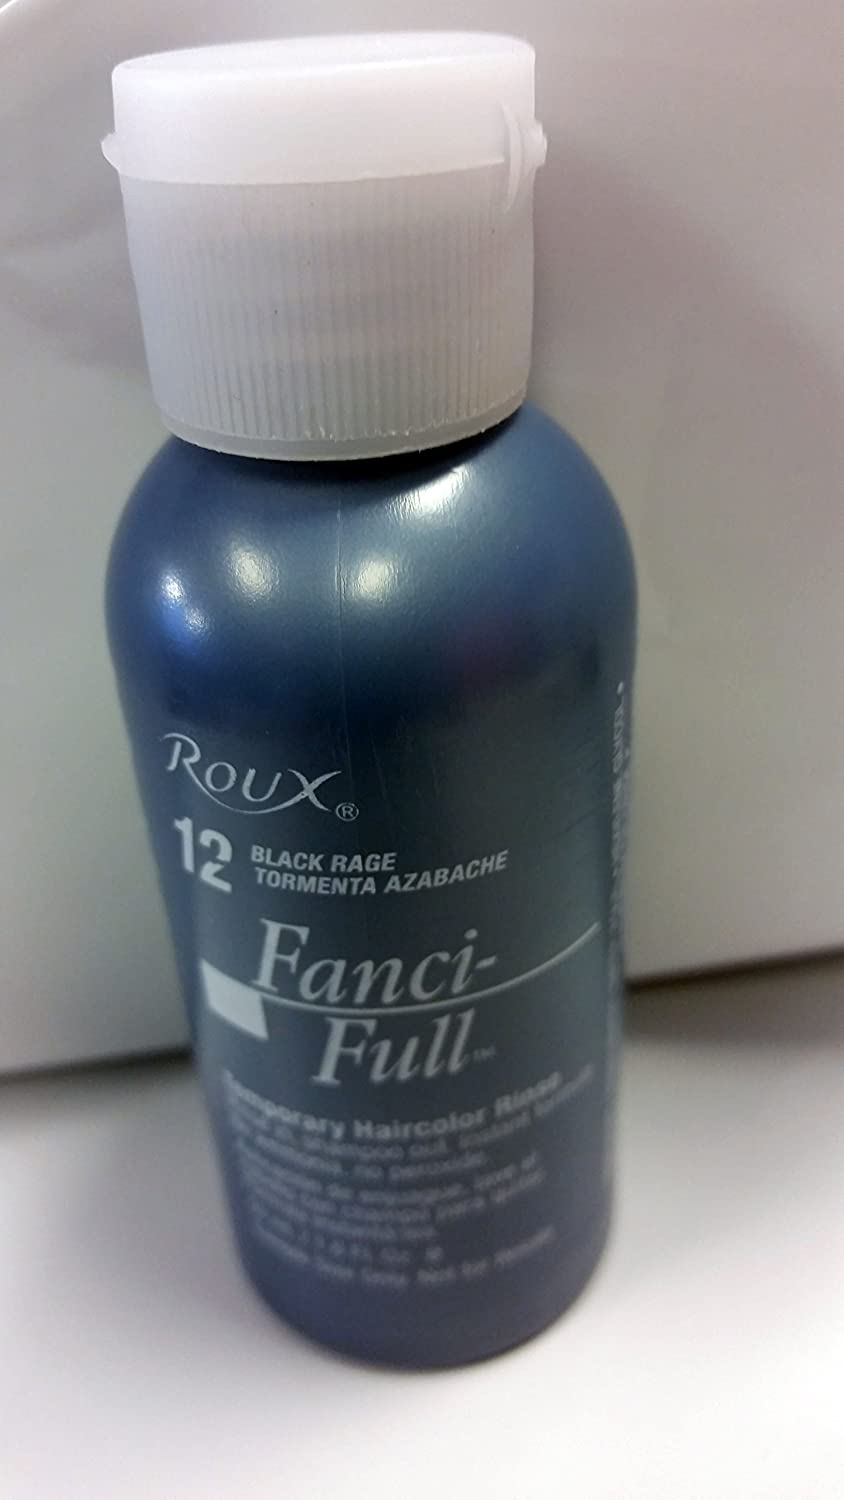 Roux Fanci-Full Temporary Hair Color Rinse #12-Black Rage 1.6OZ (1 PACK)